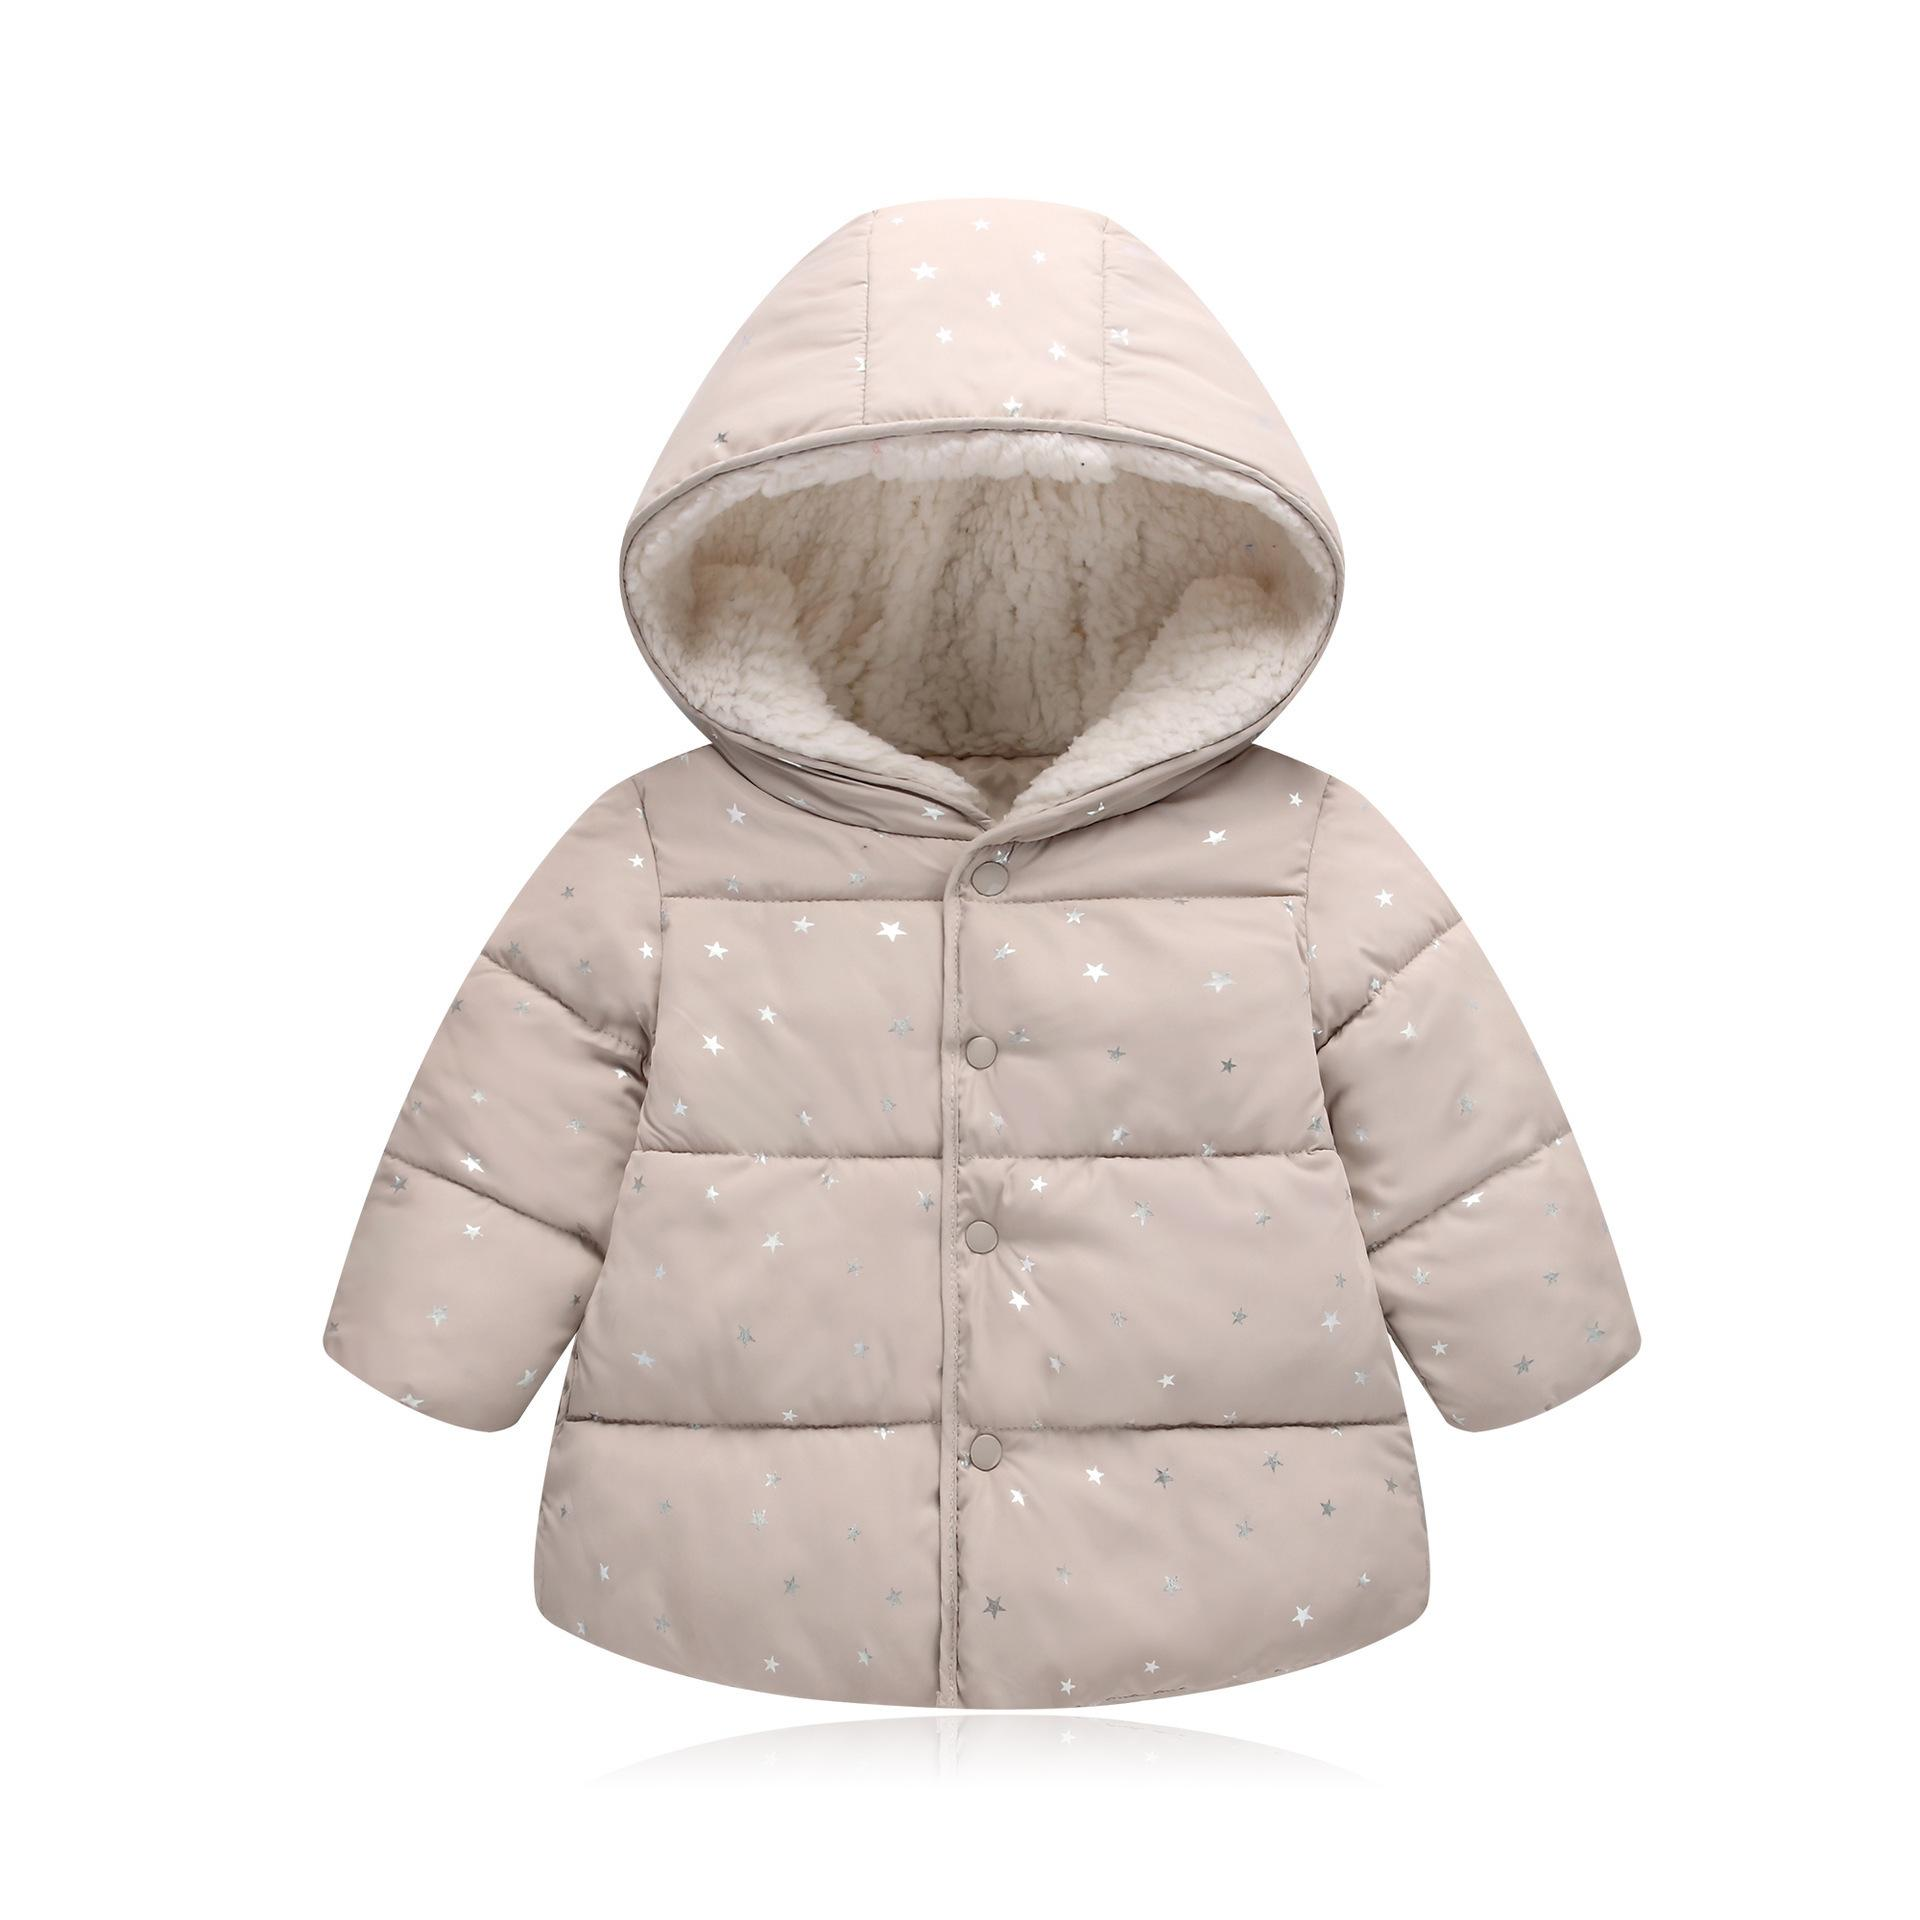 cbfe43f49 good quality kids fashion winter jackets 2019 new solid hooded baby girls  boys cotton thincken coats infant outerwear warm clothes